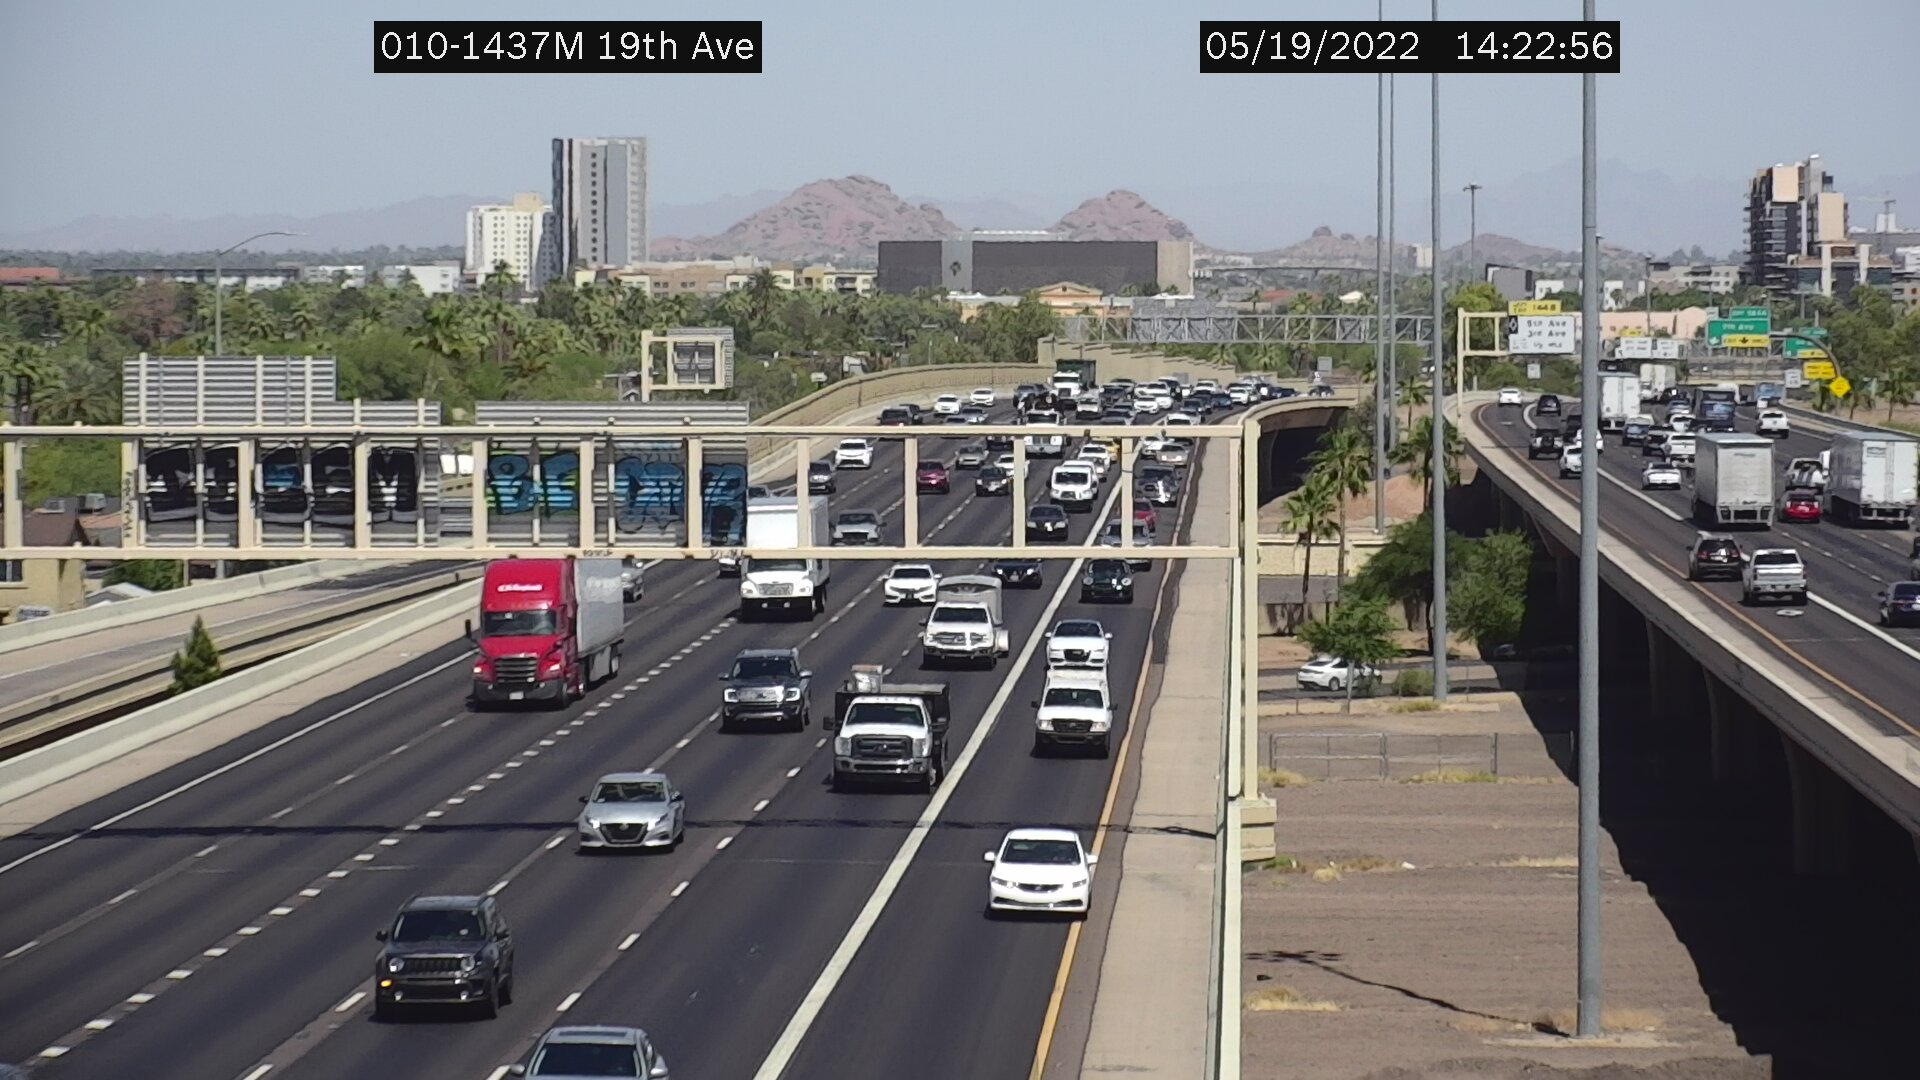 19th Ave M (I10) (010) - Phoenix and Arizona